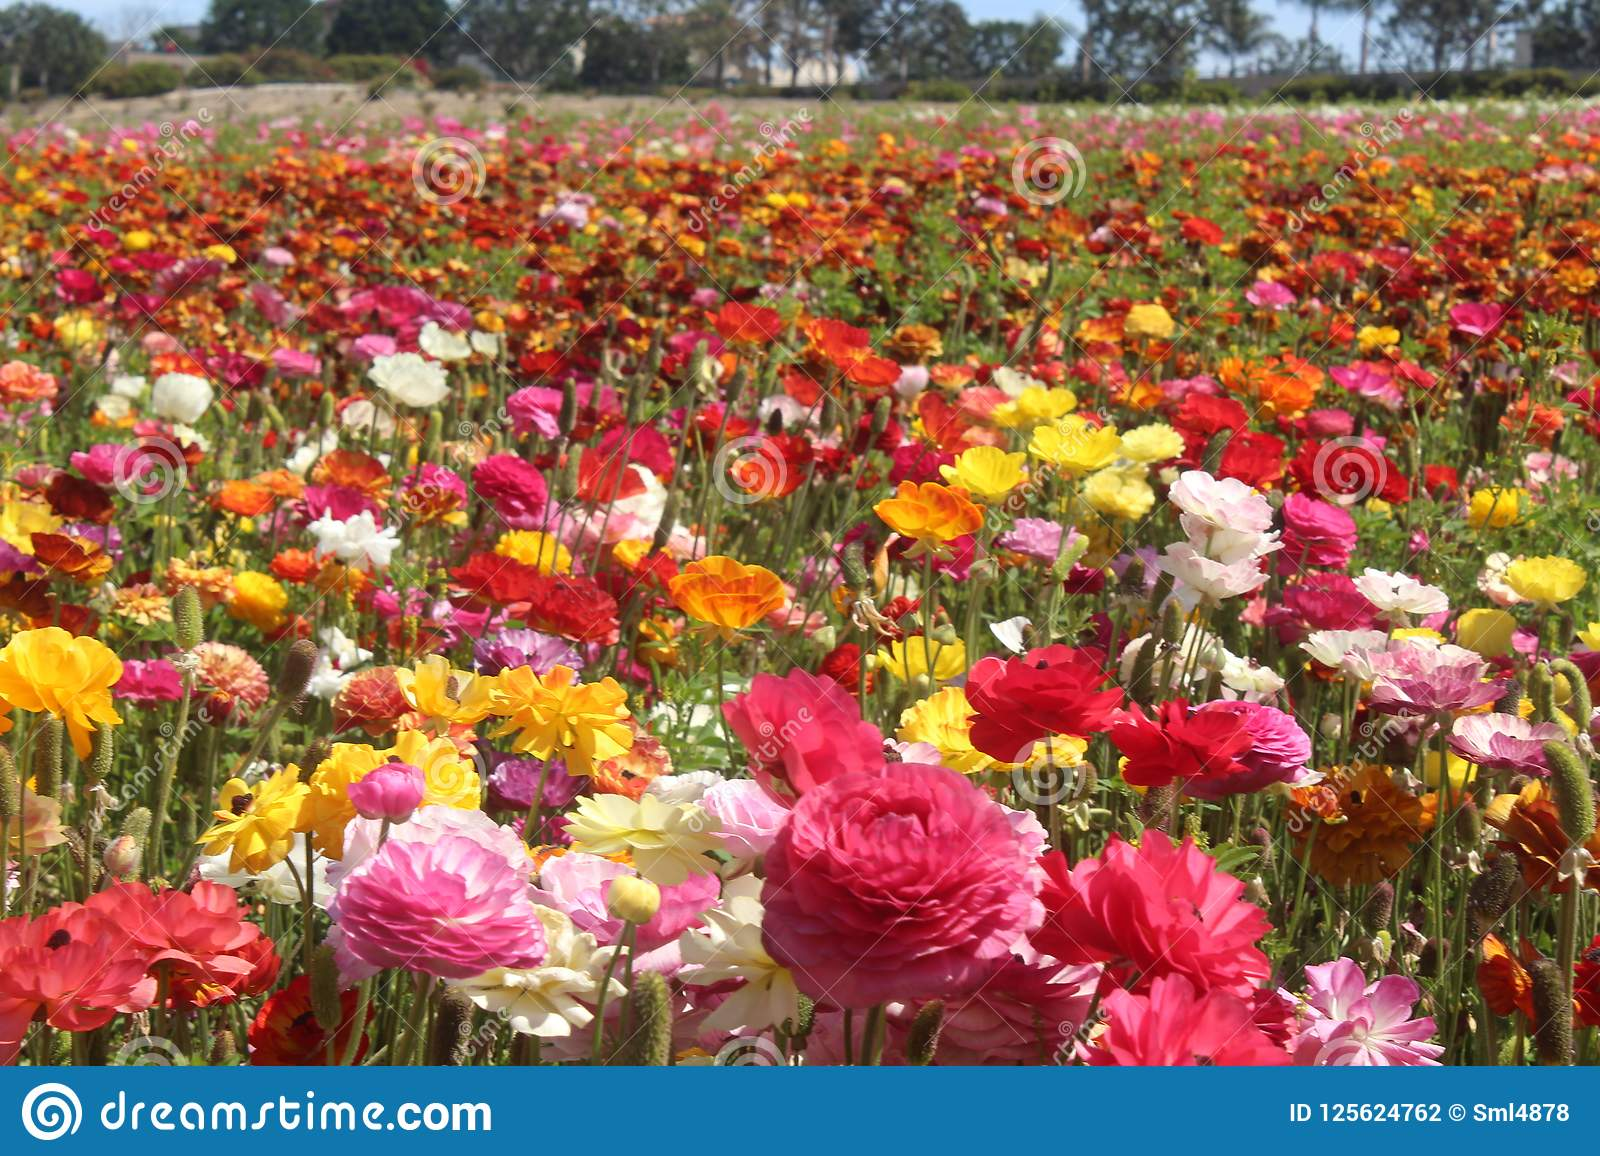 Micro Field Of Flowers Pink Flowers Red Flowers Fields Of Flowers